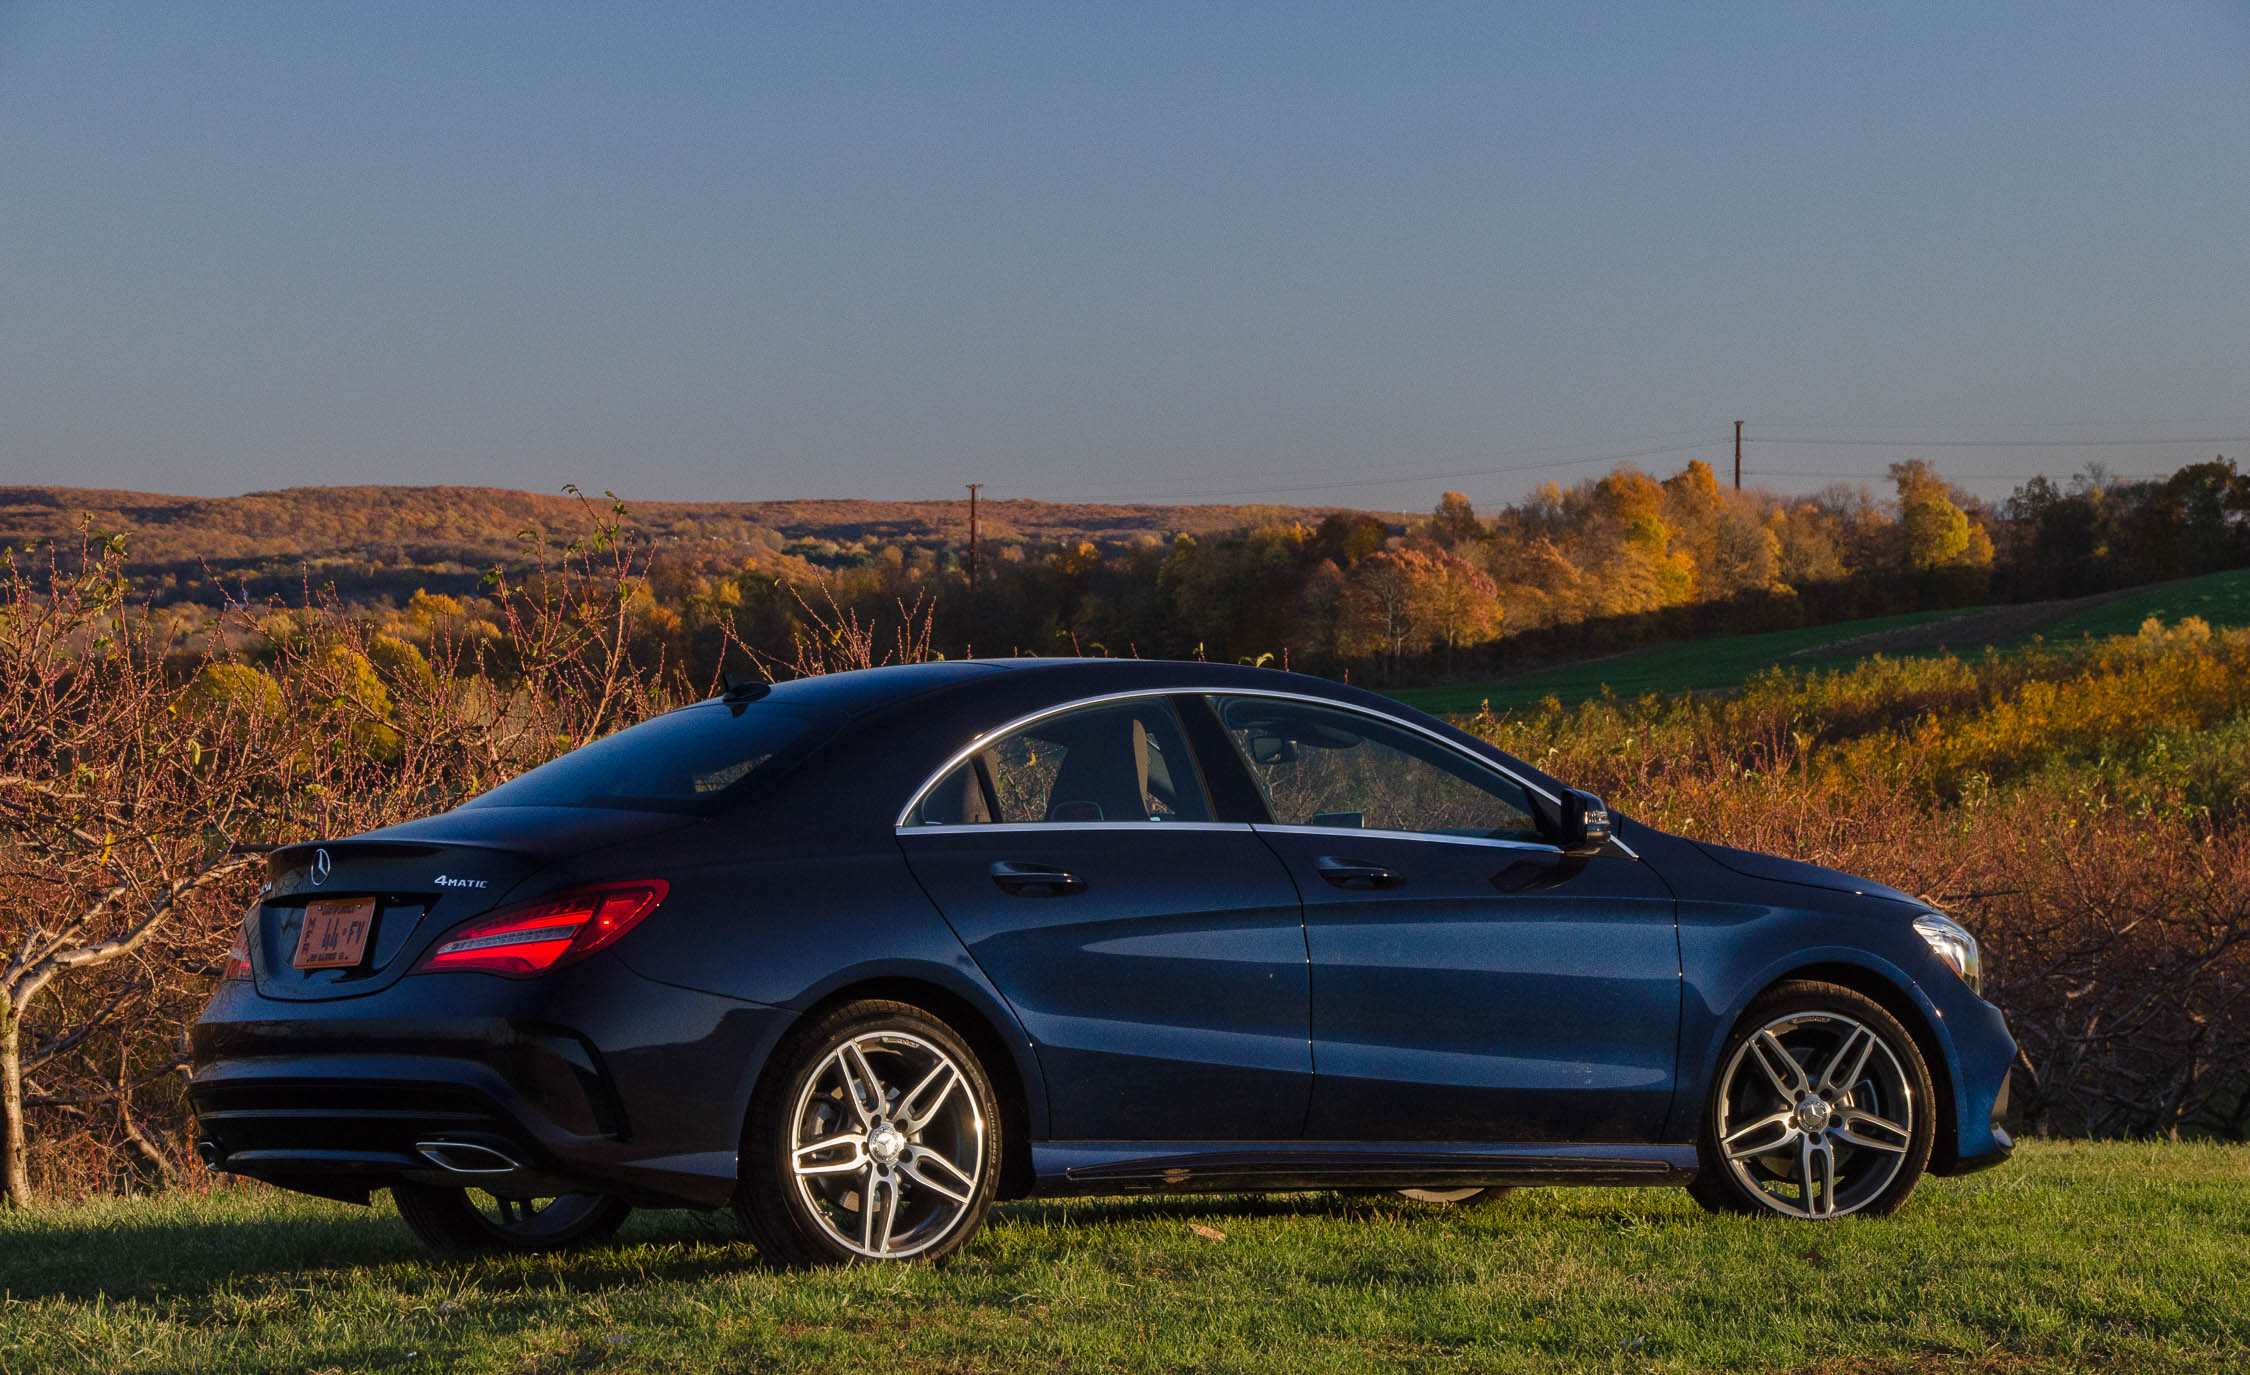 2017 Mercedes Benz CLA250 4MATIC Exterior Side And Rear (Photo 7 of 21)